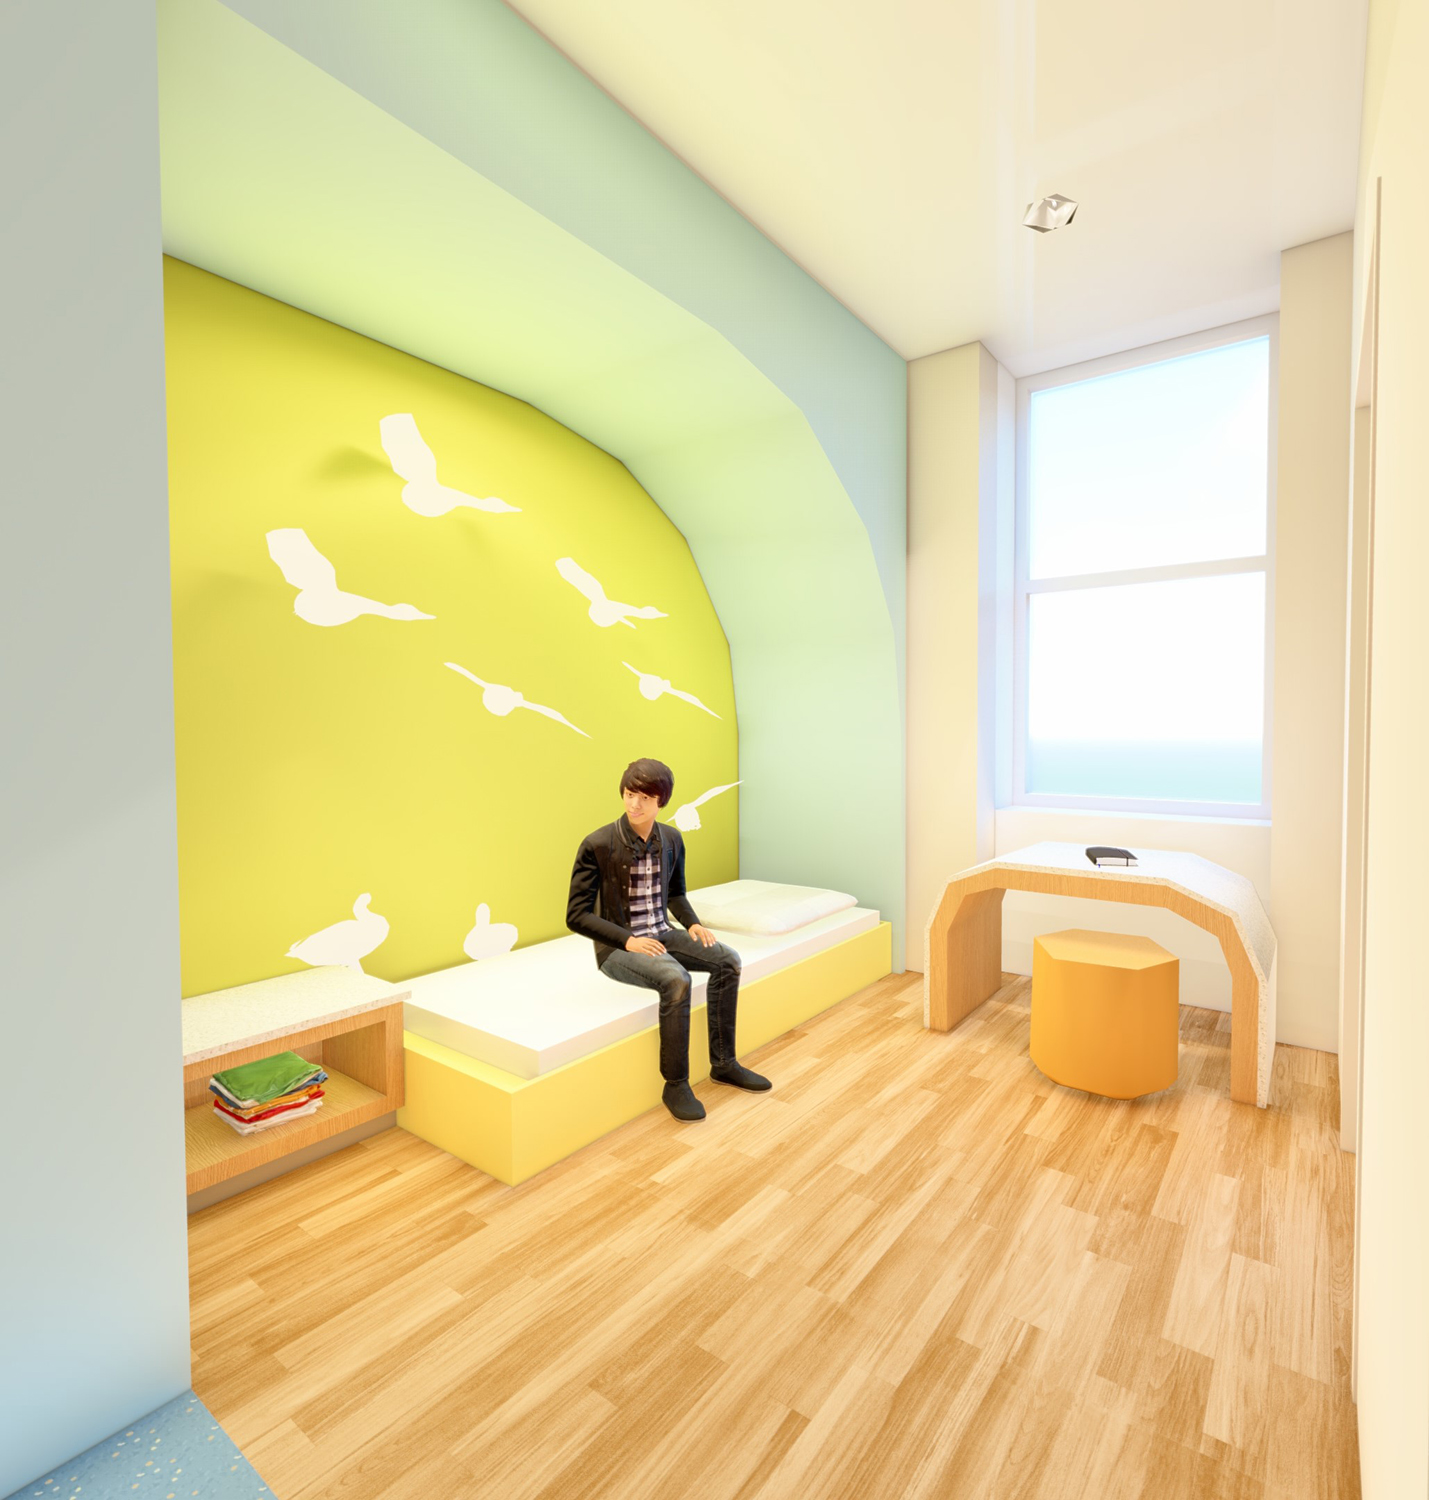 Rendering of an inpatient psychiatry room with bed, storage, desk, and wall graphics.